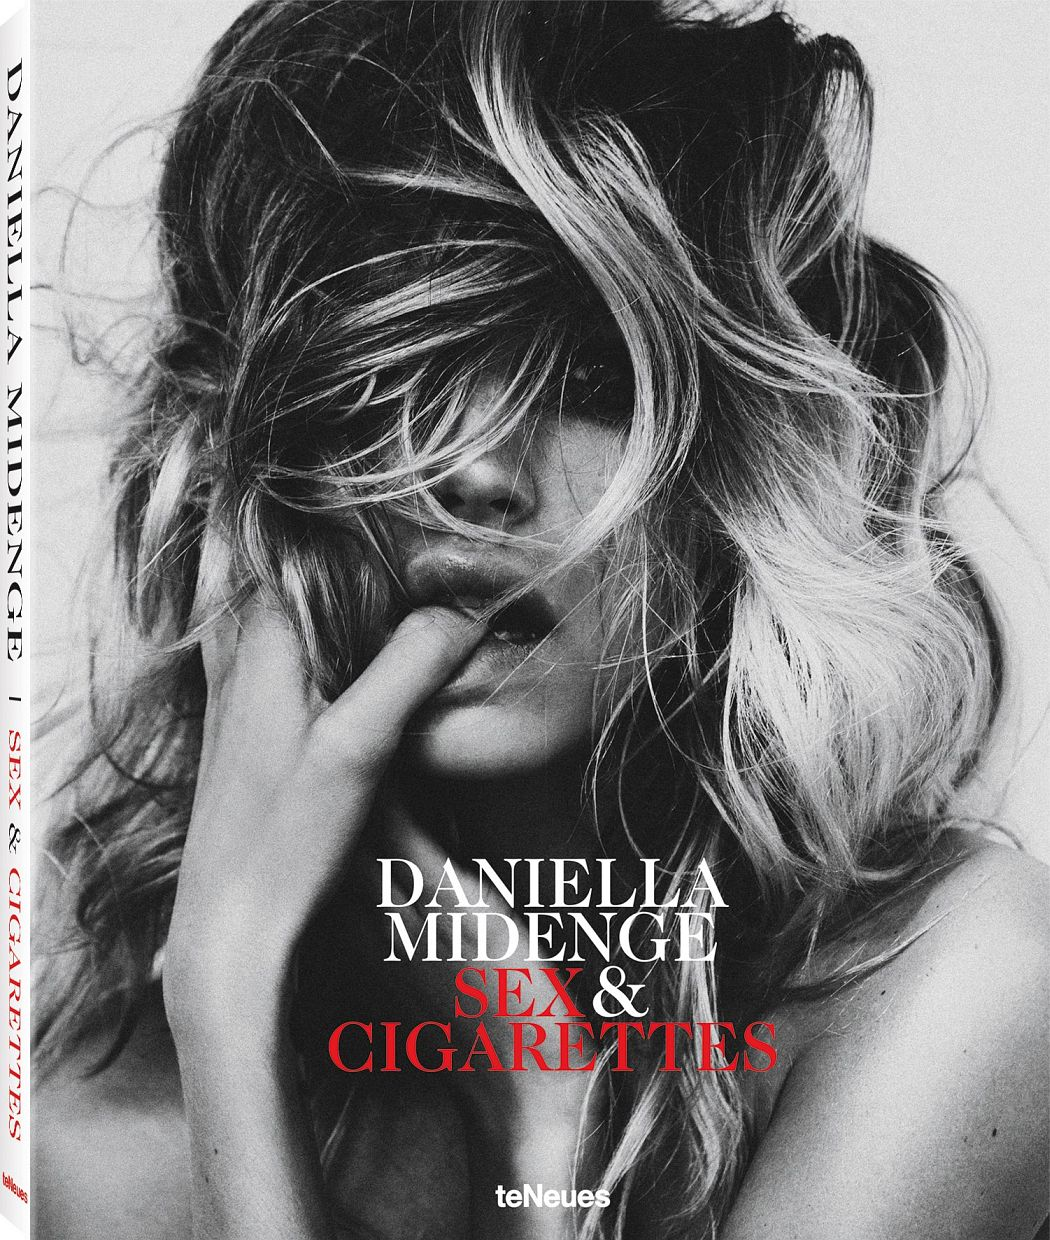 © Sex & Cigarettes by Daniella Midenge, published by teNeues, www.teneues.com, Chloe, Hamburg, 2014, Photo © 2017 Daniella Midenge.